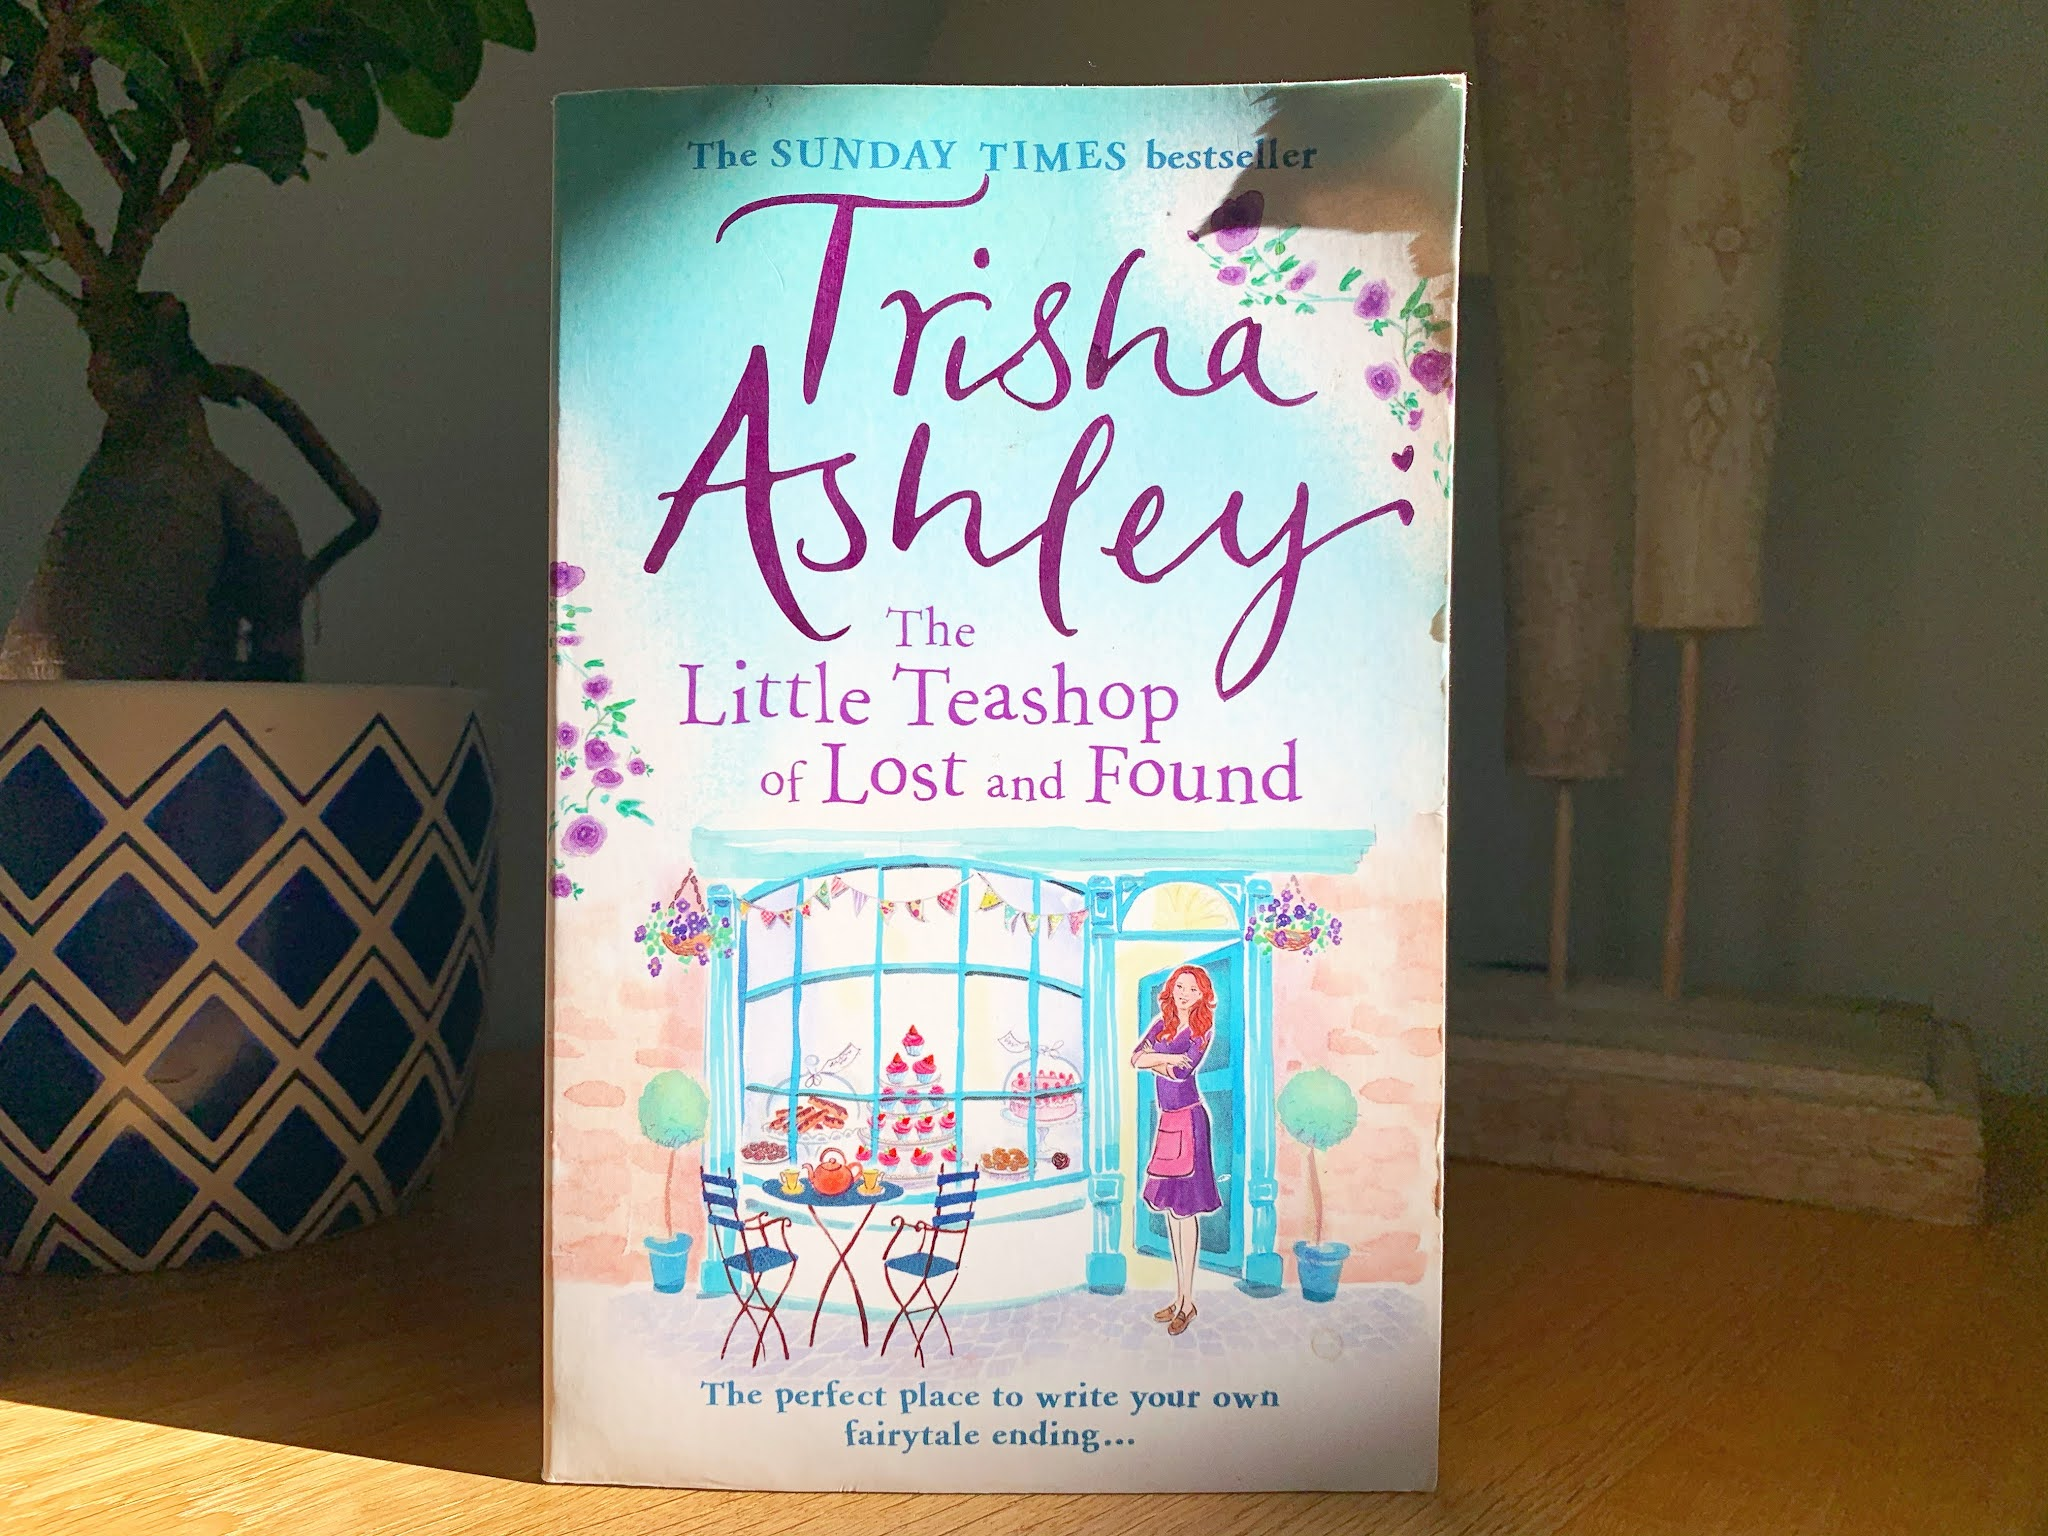 The Little Teashop of Lost and Found by Trisha Ashley on a shelf